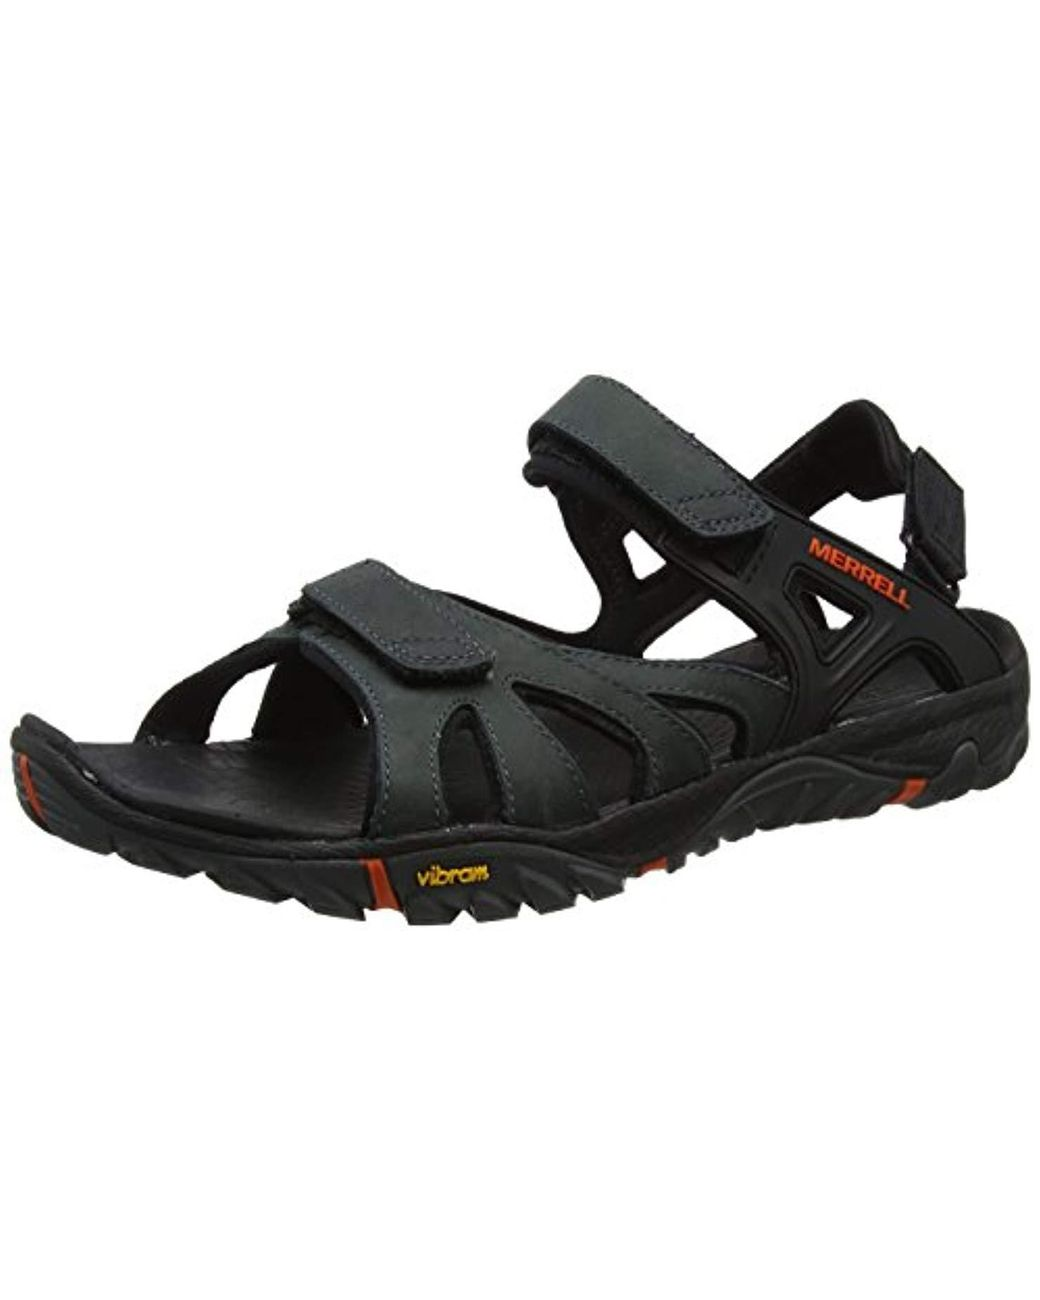 9038ca09efac Long-Touch to Zoom. Long-Touch to Zoom. 1  2  3  4  5  6  7. Merrell - Gray   s All Out All Out Blaze Sieve Convert Hiking Sandals for Men ...